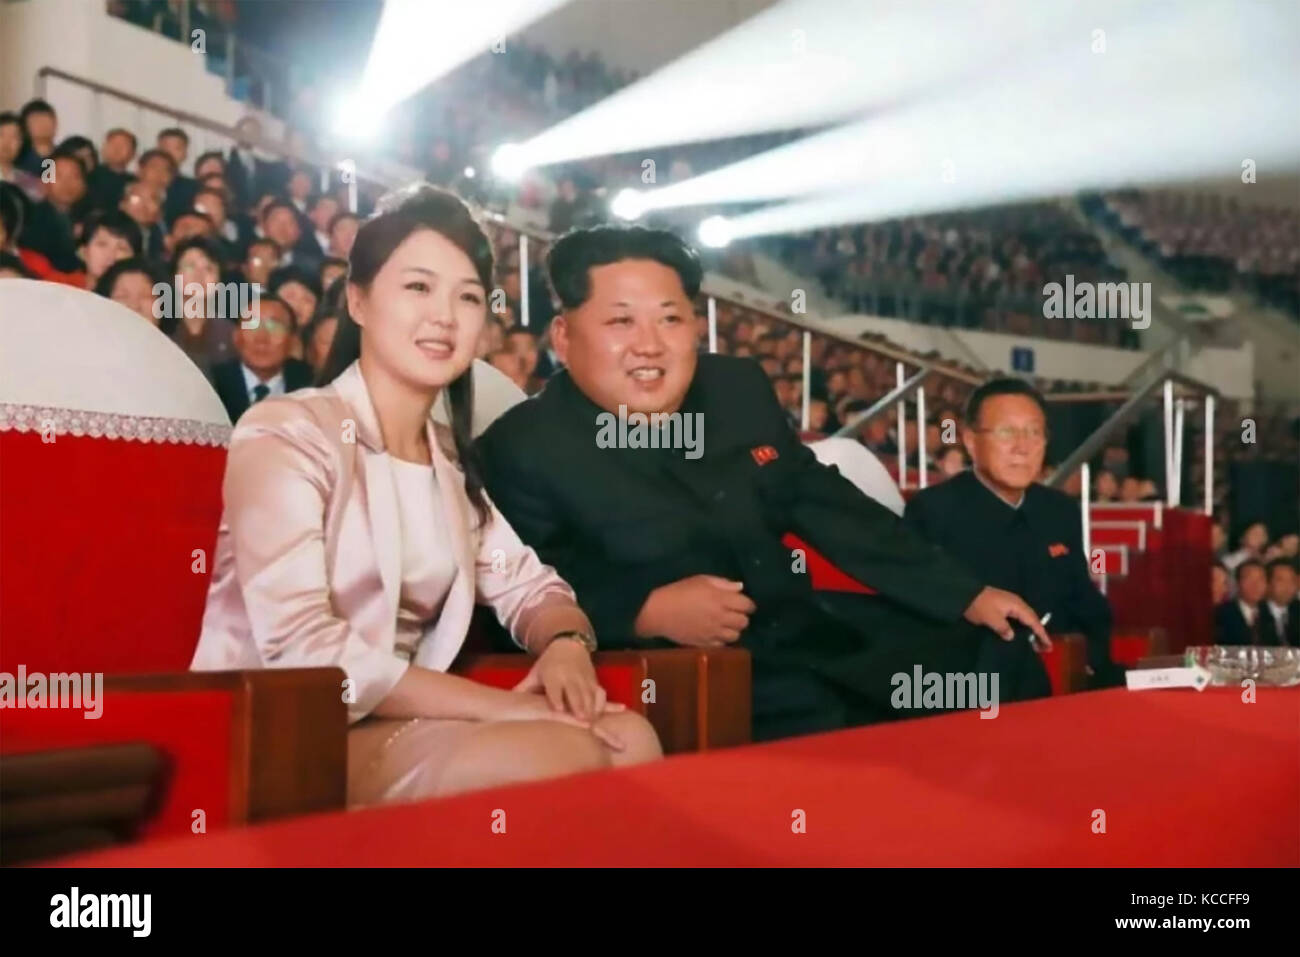 KIM JONG-UN Leader of North Korea with his wife Ri Sol-ju in an official photo issued in 2017 by KCNA (North Korean - Stock Image